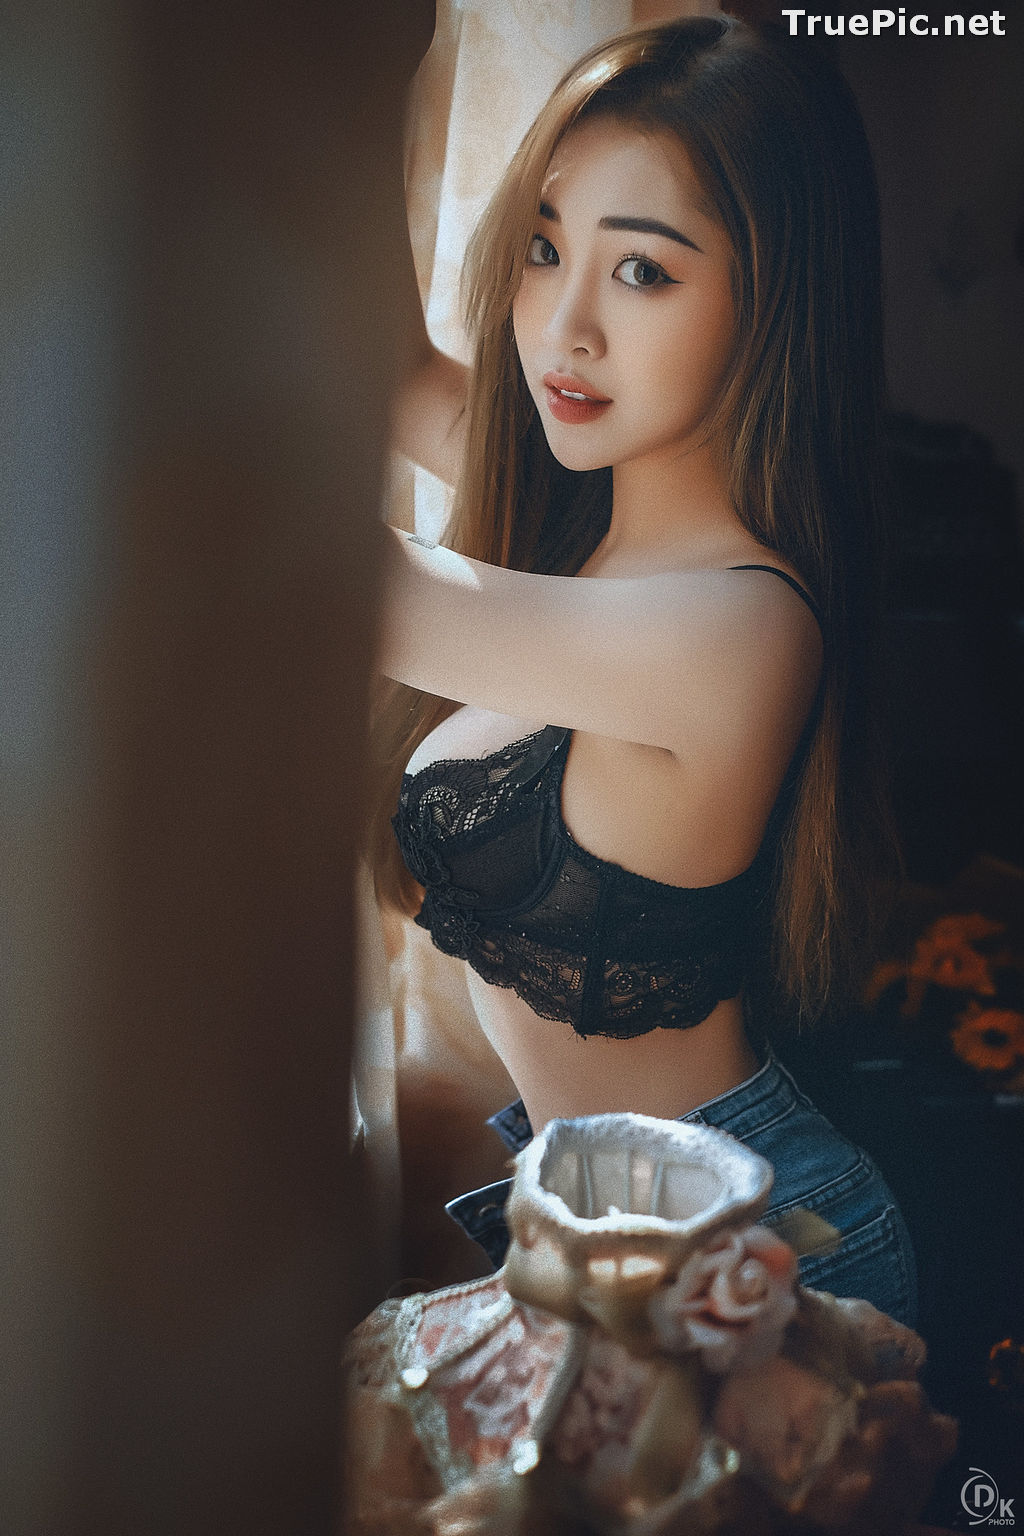 Image Vietnamese Model - Sexy Angel In Black Lingerie and Jean - TruePic.net - Picture-10